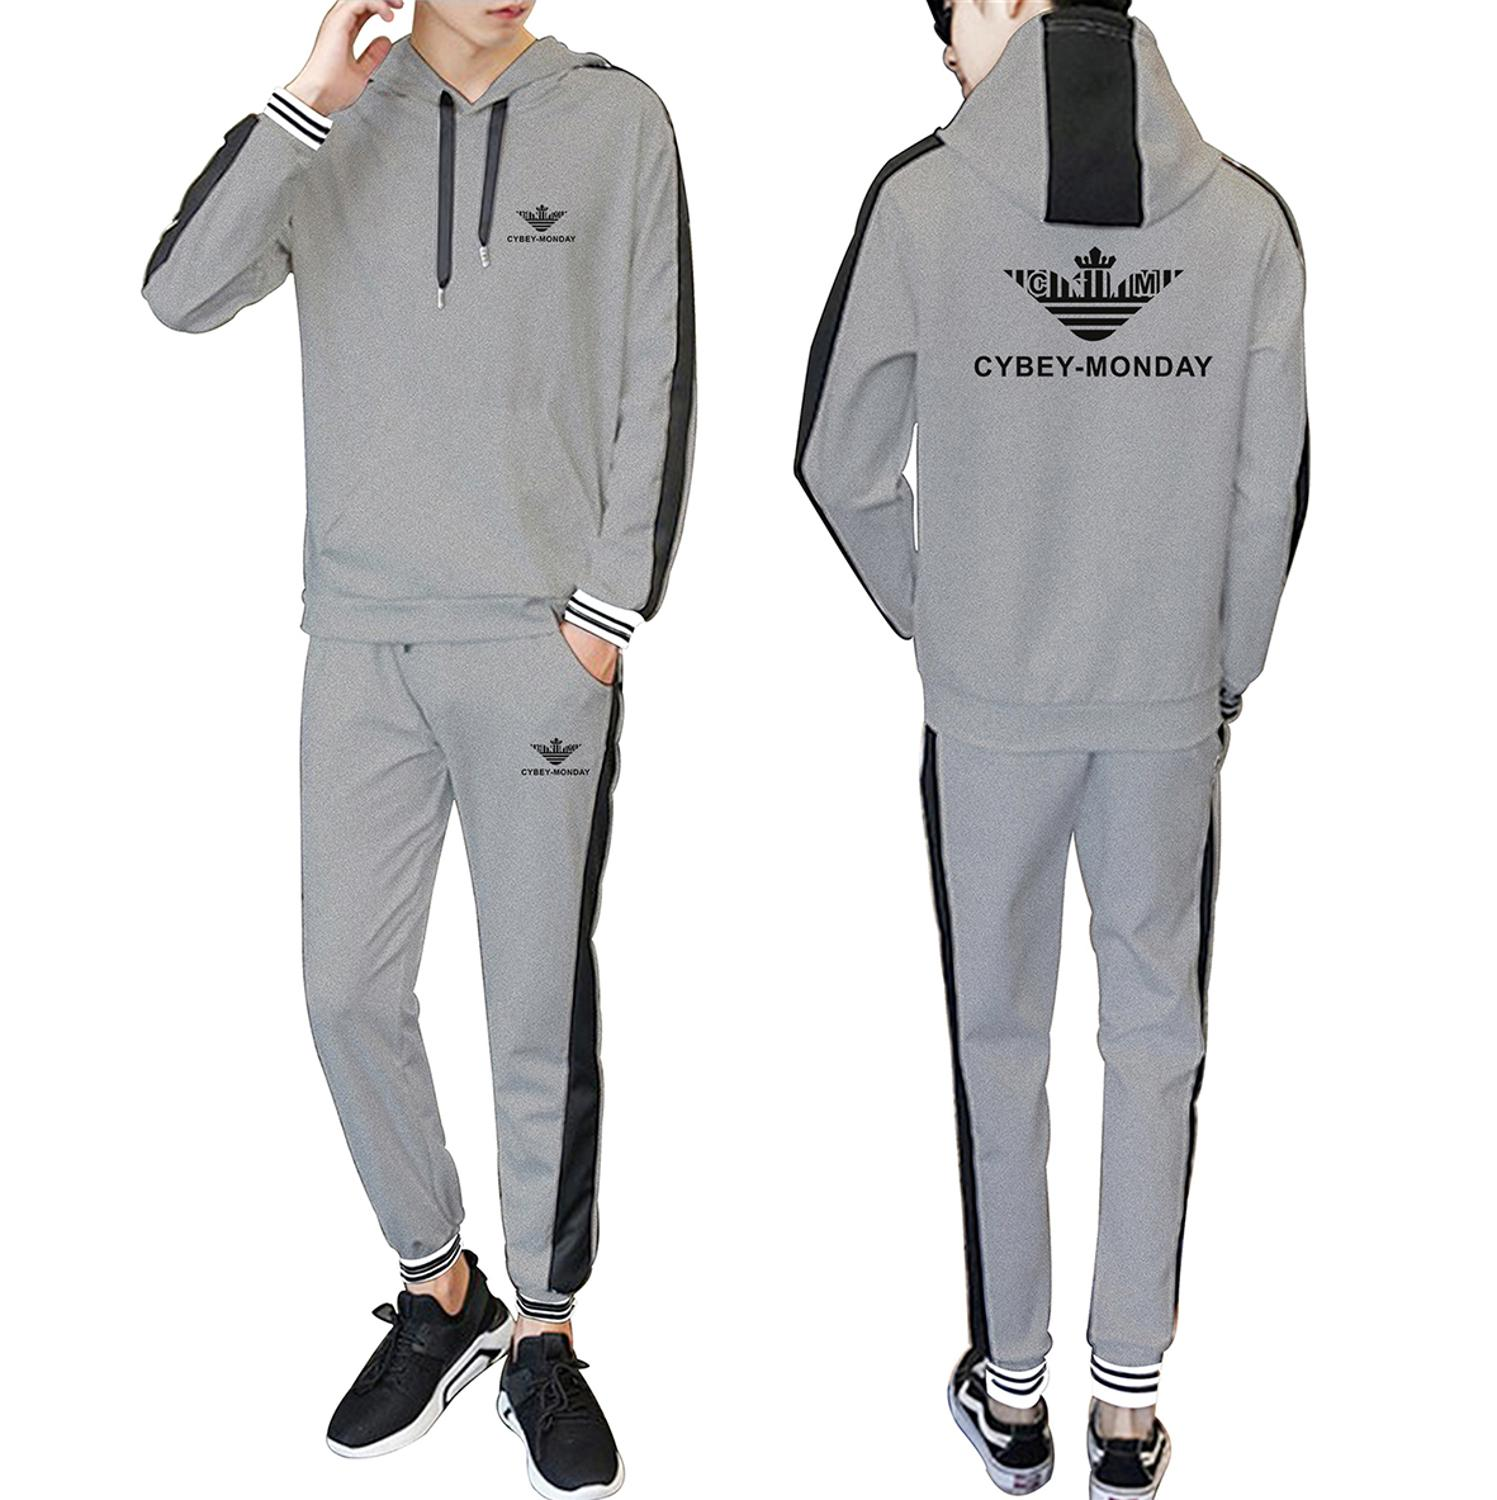 Sports New Logo 2020 Spring and Autumn New Hooded Stitching Fashion Casual Suit Fashion Men's and Women's Sports Casual Suit 5